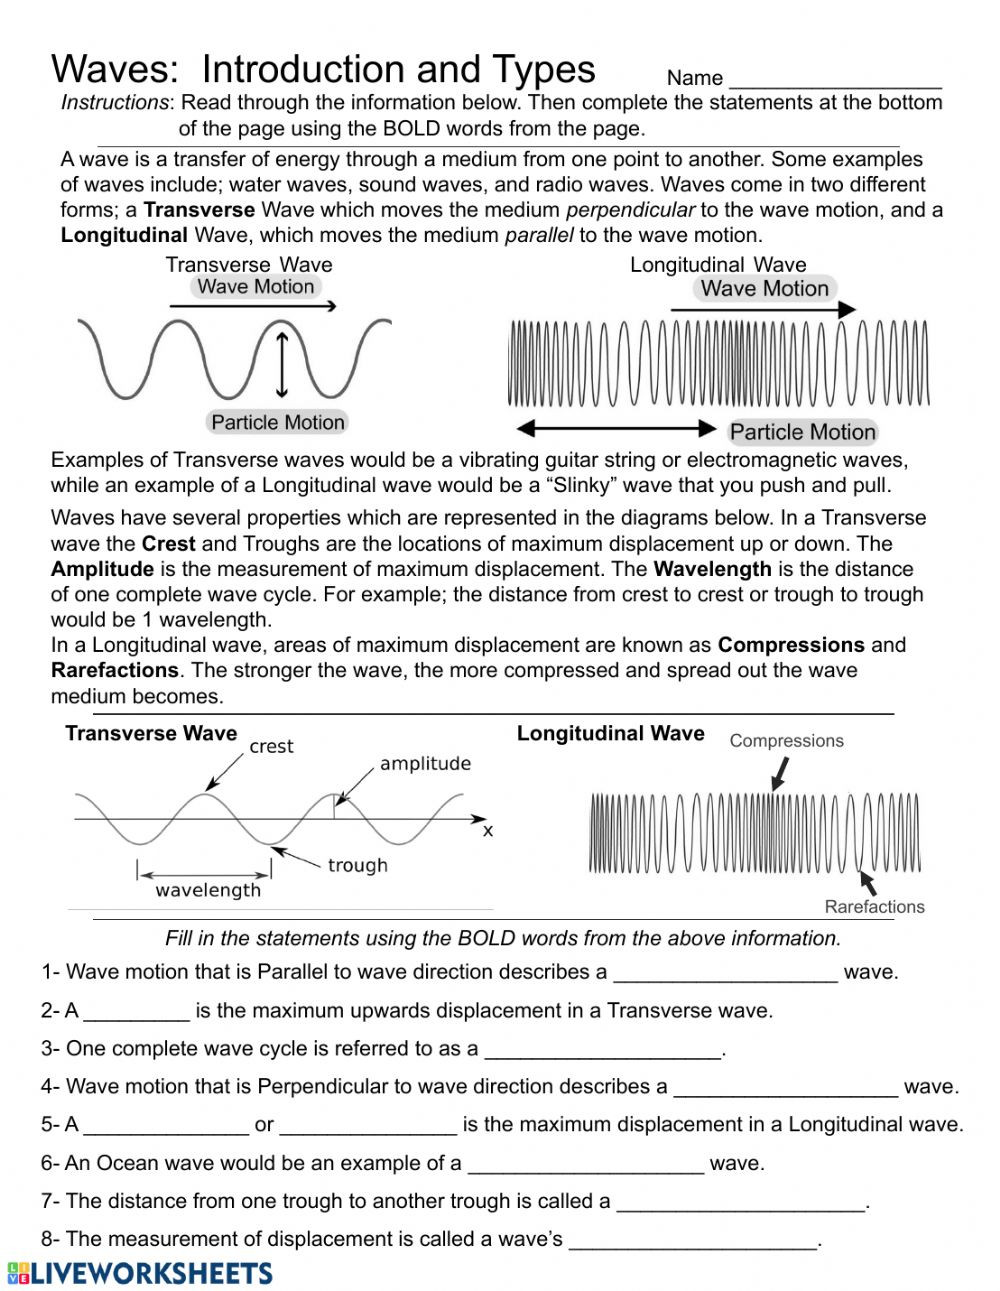 Waves Worksheet Answer Key Waves Introduction and Types Interactive Worksheet